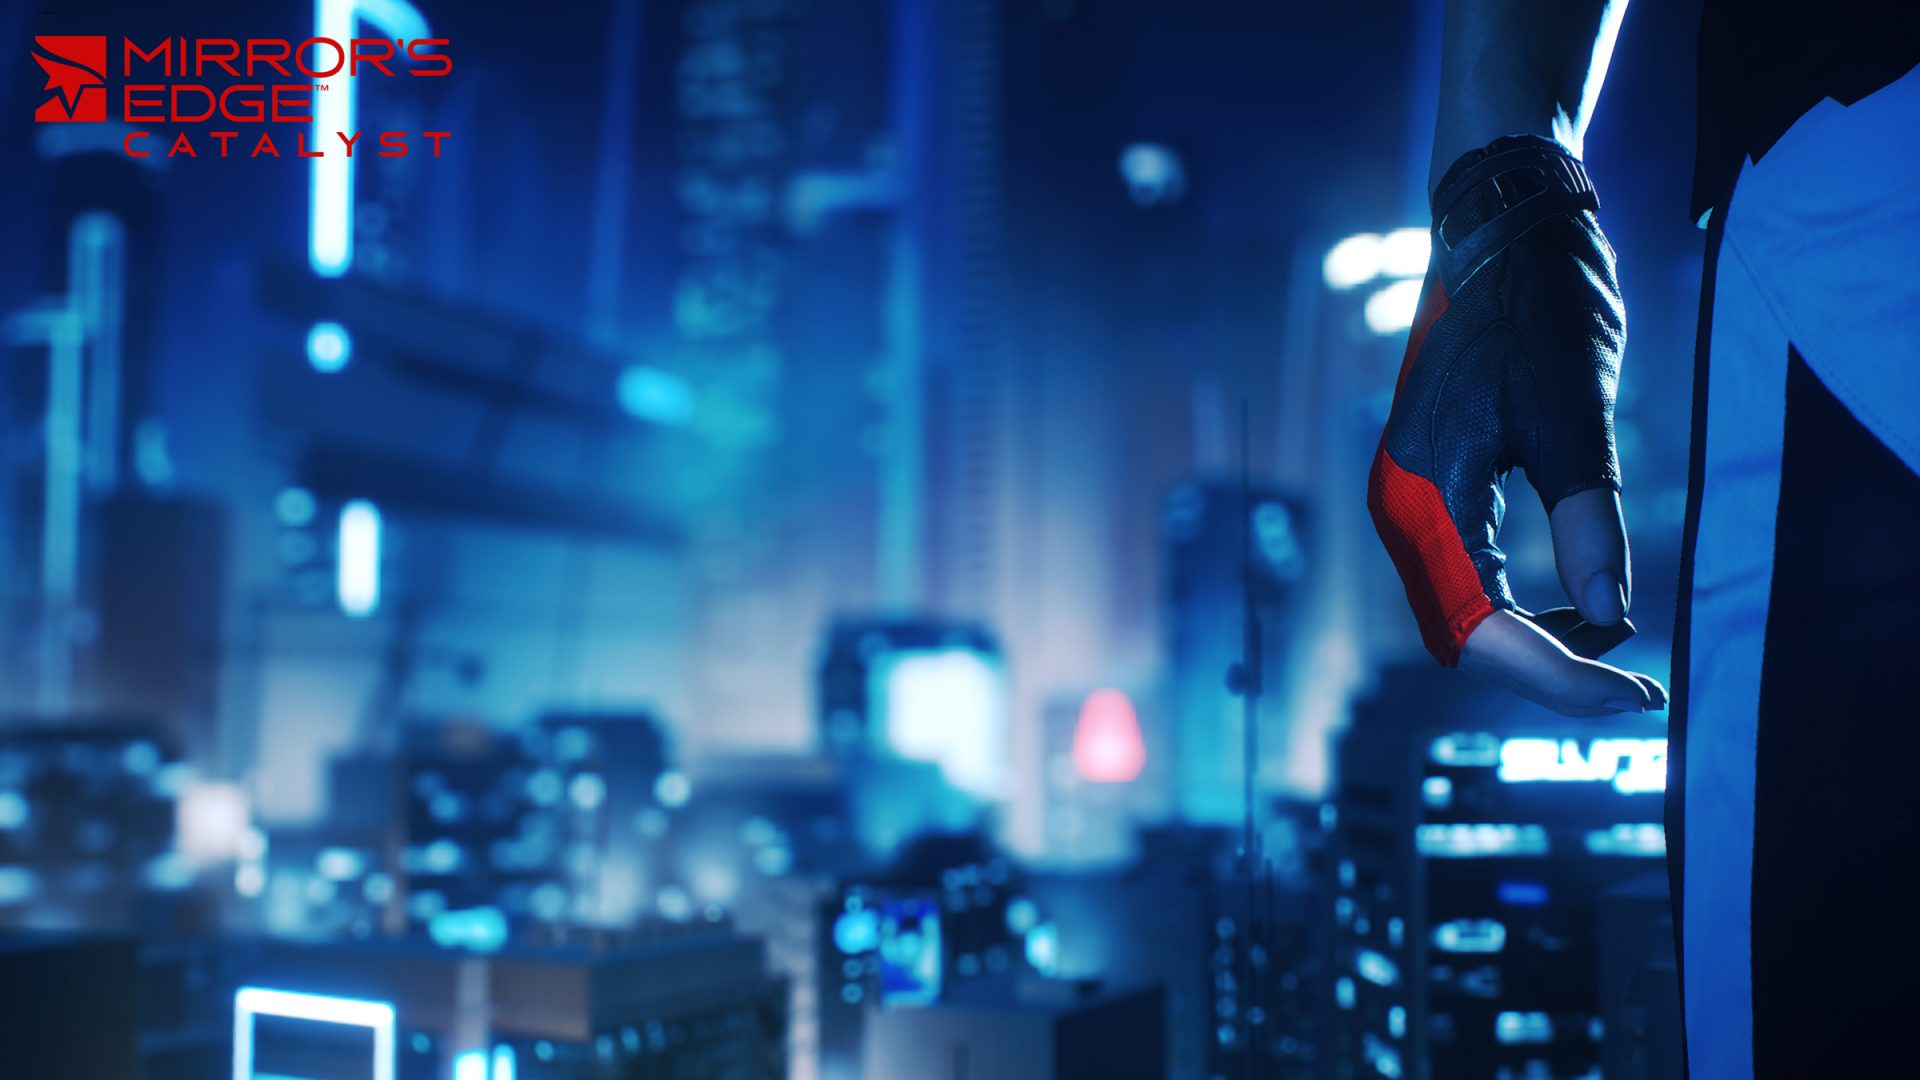 E3 2015: Mirror's Edge Catalyst Parkours To Stores Next February